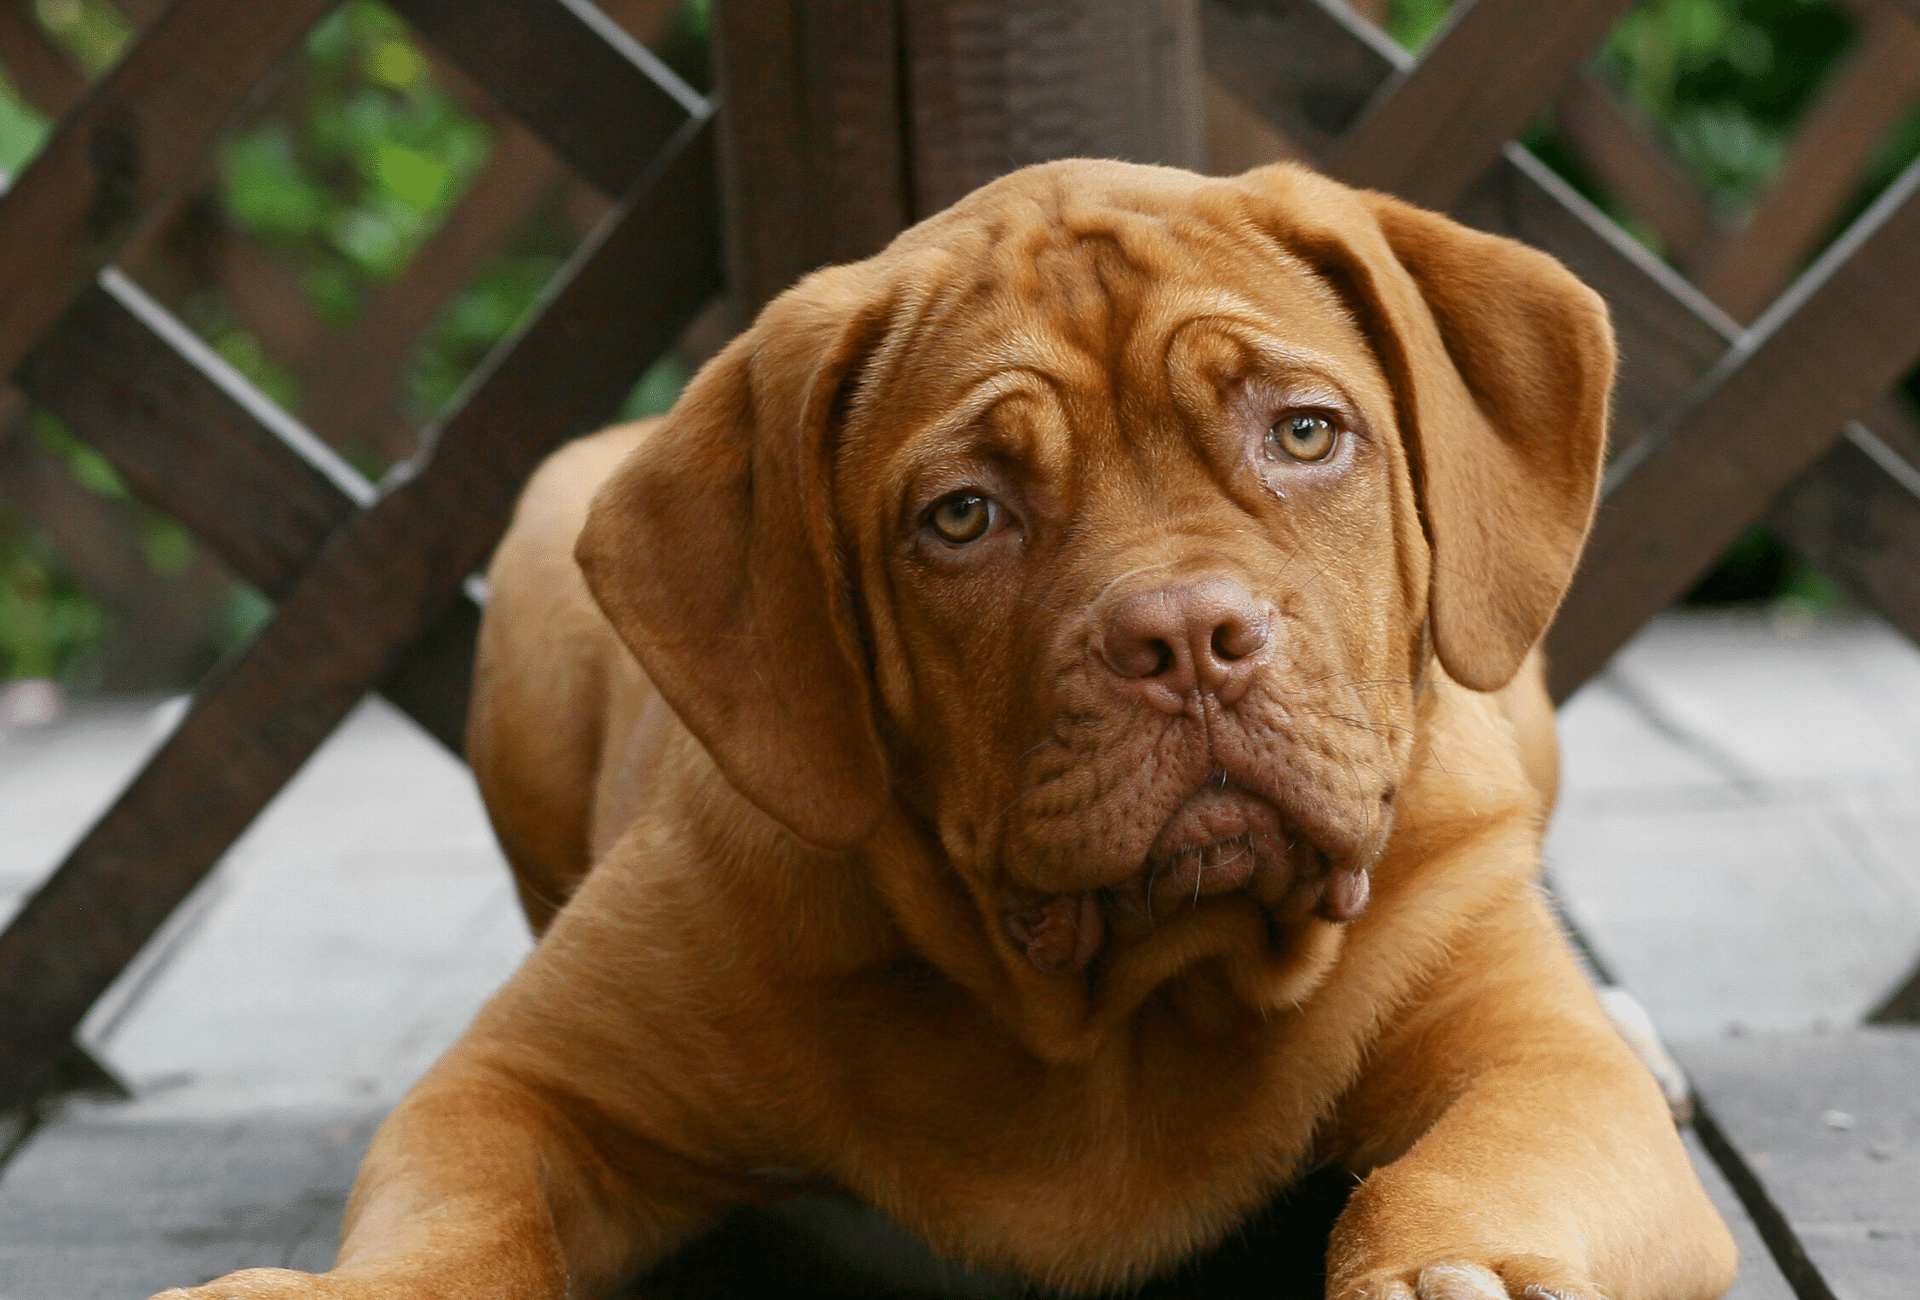 Mastiff puppy titling his head, possibly experiencing dog hiccups.